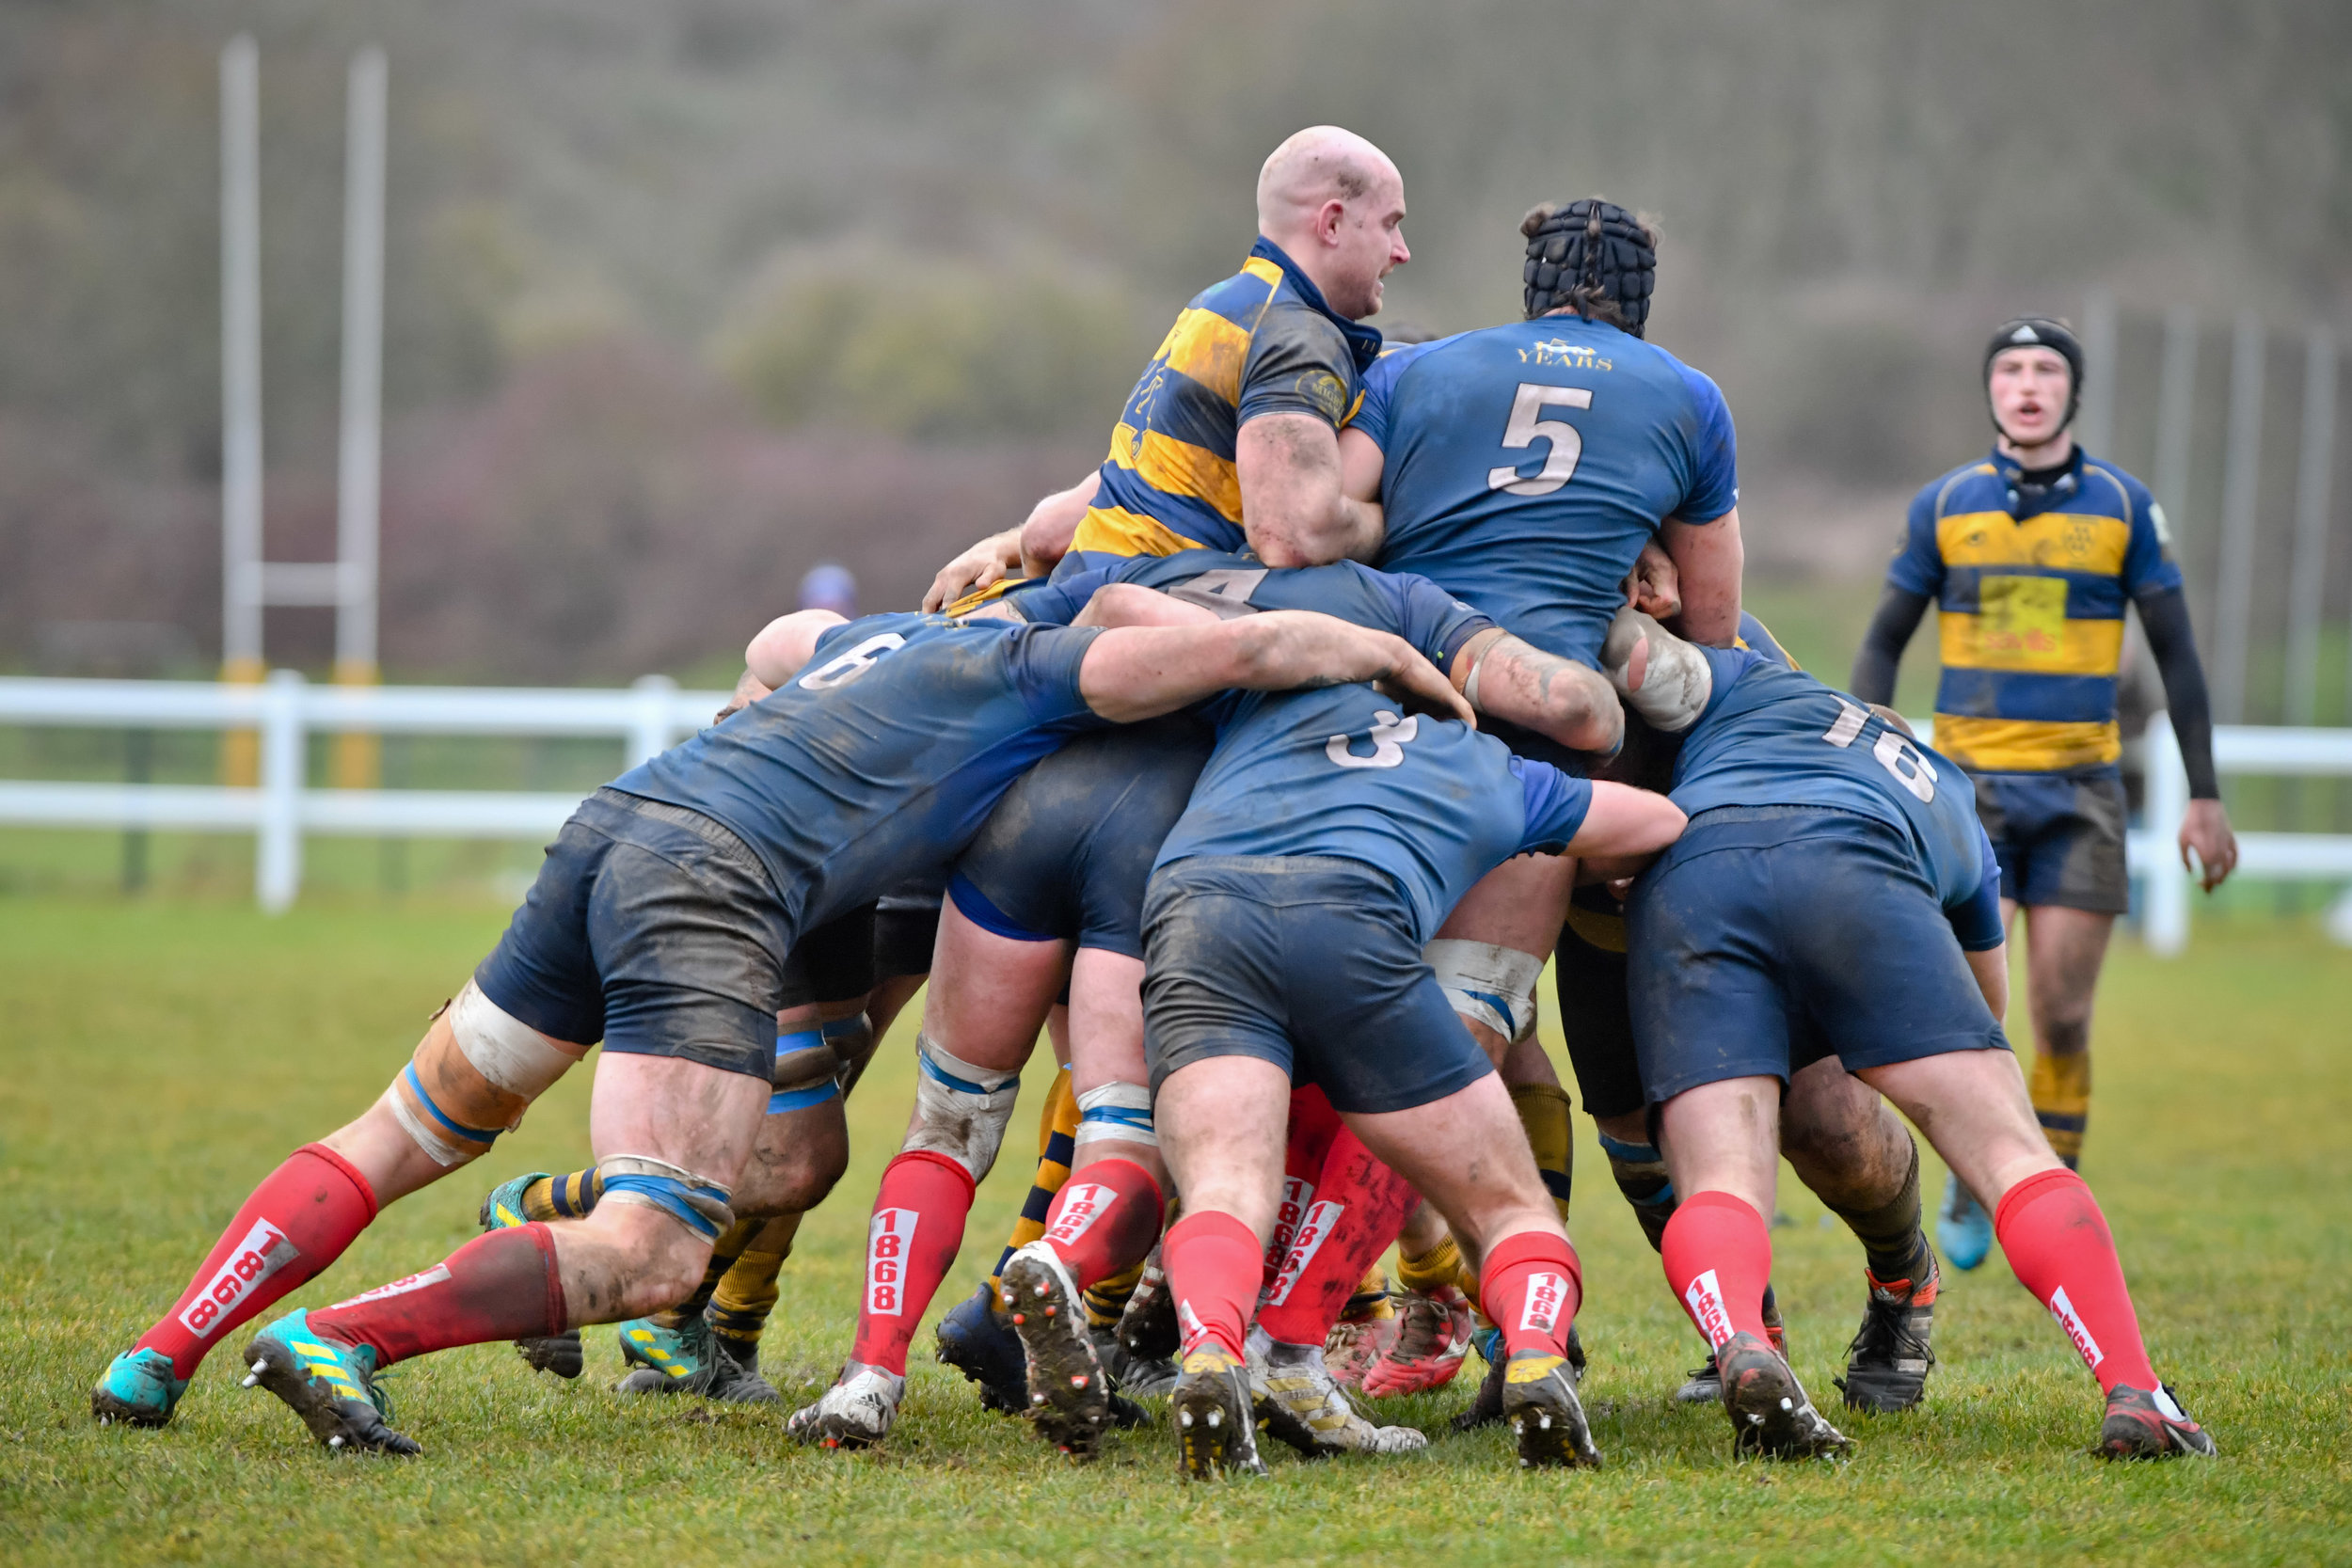 The Oaks and Blues pack went toe to toe throughout the eighty minutes in a bruising encounter.  Photo Credit: David Purday